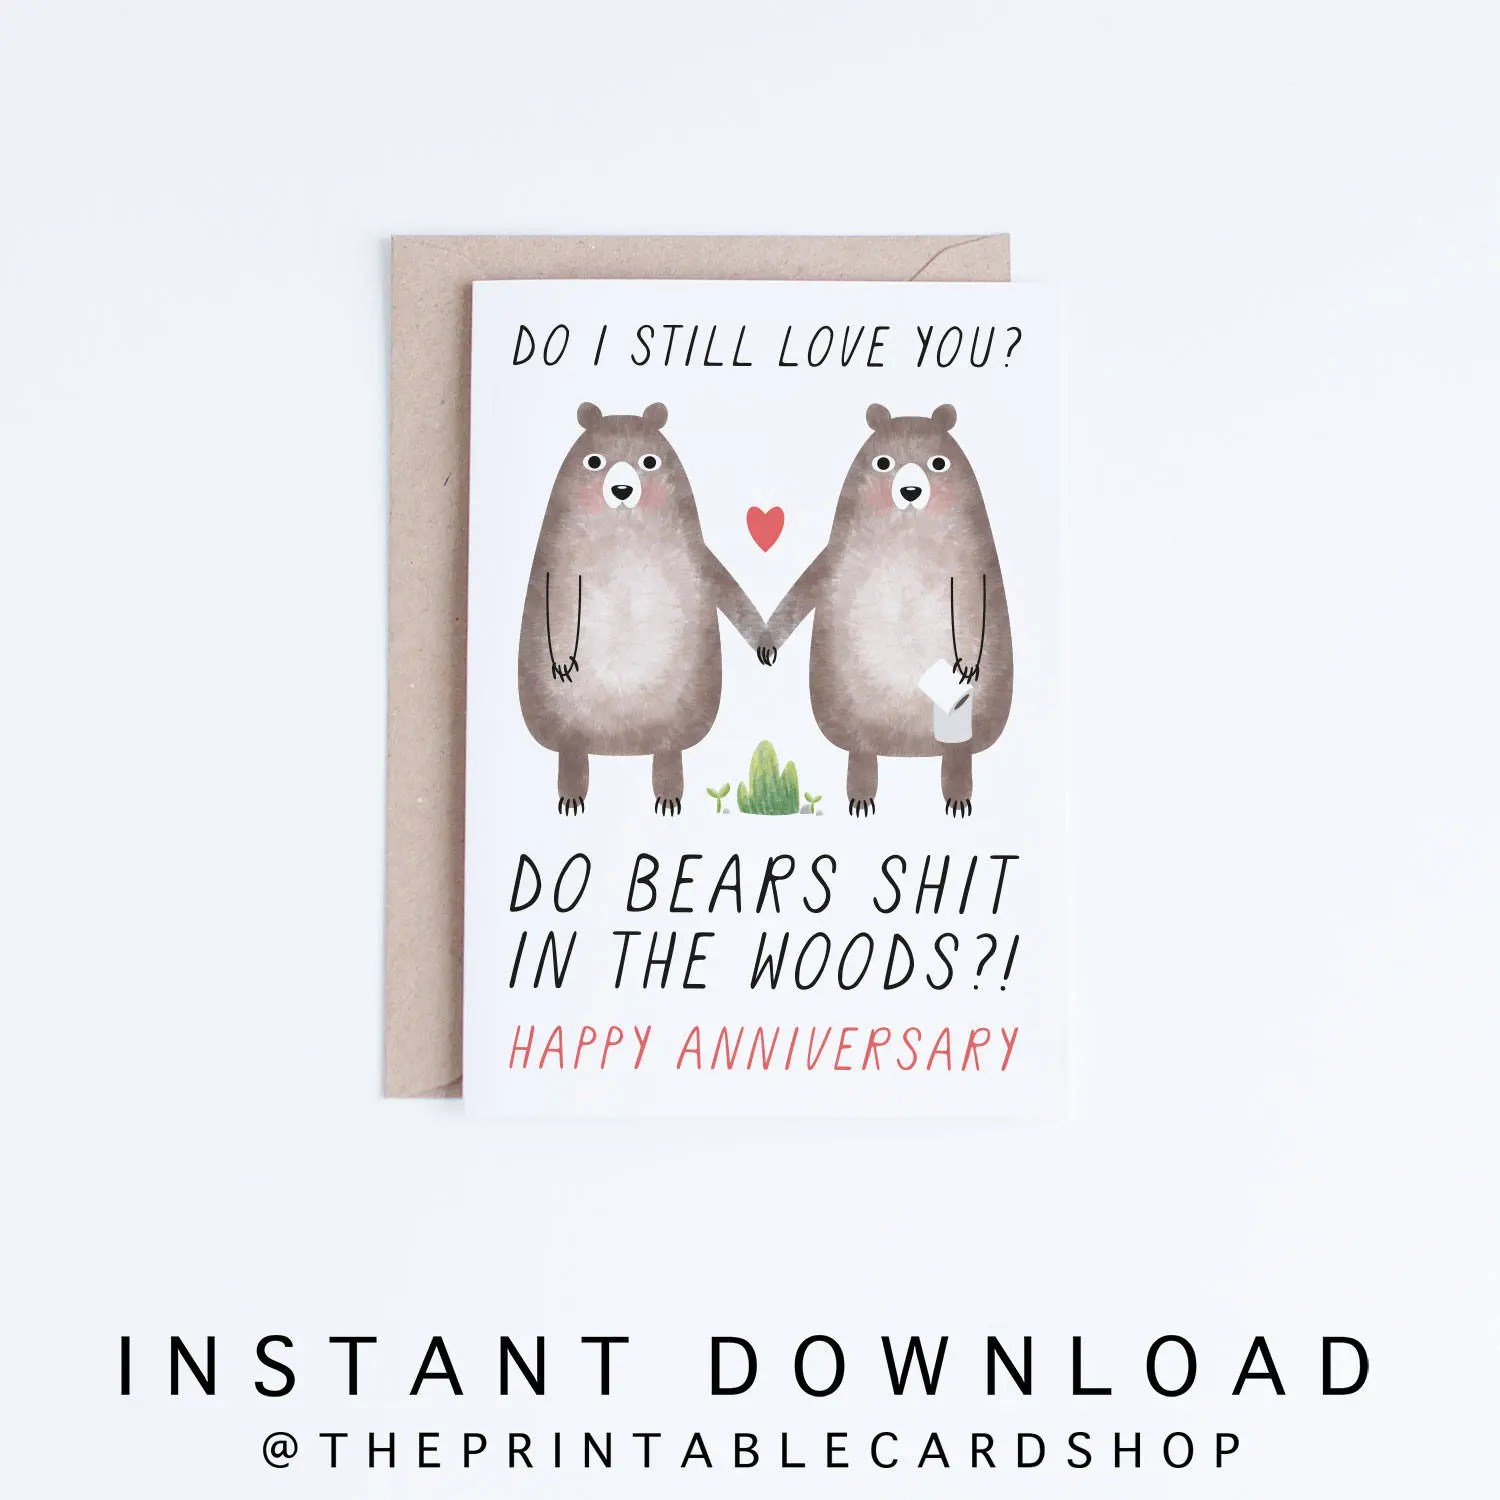 Printable Anniversary Cards Instant Download Funny Etsy